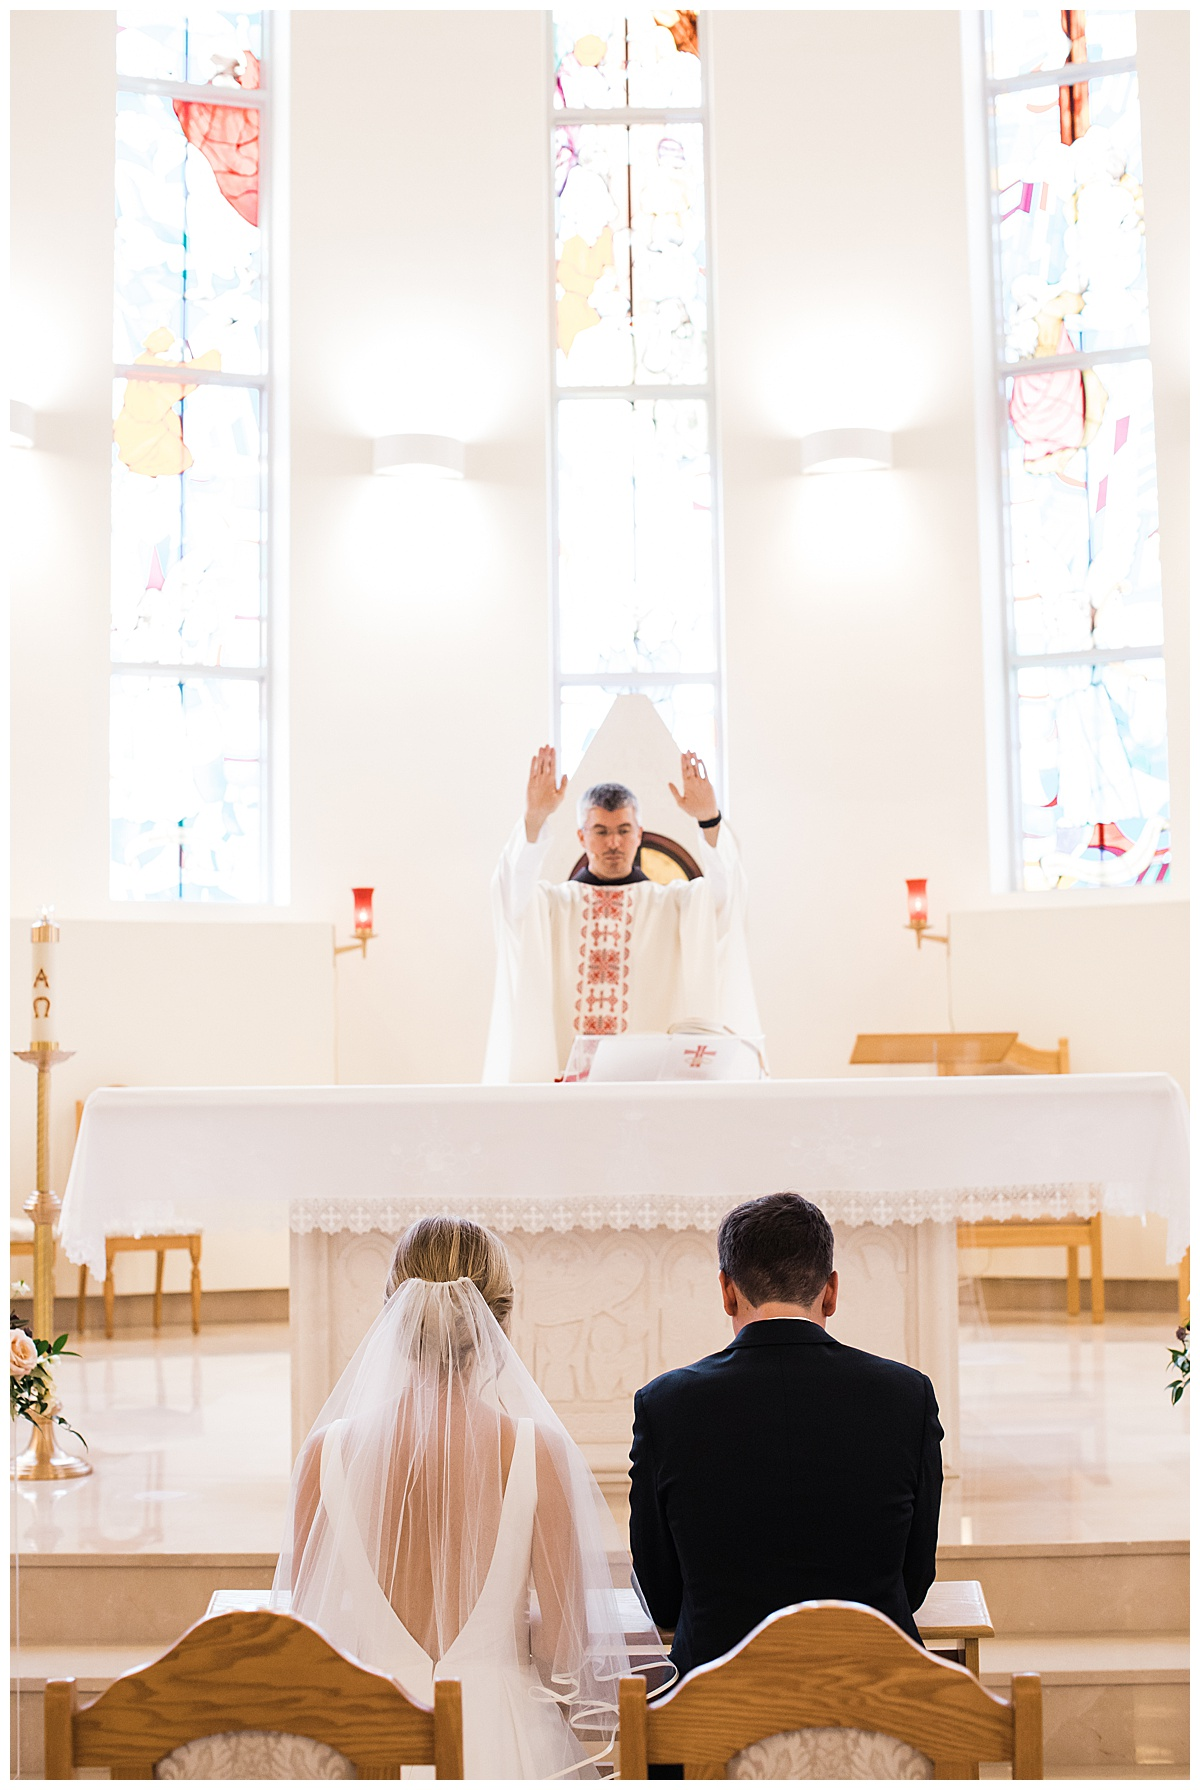 Bride and groom sitting before priest at alter  Georgetown, Ontario wedding  Toronto wedding  3photography